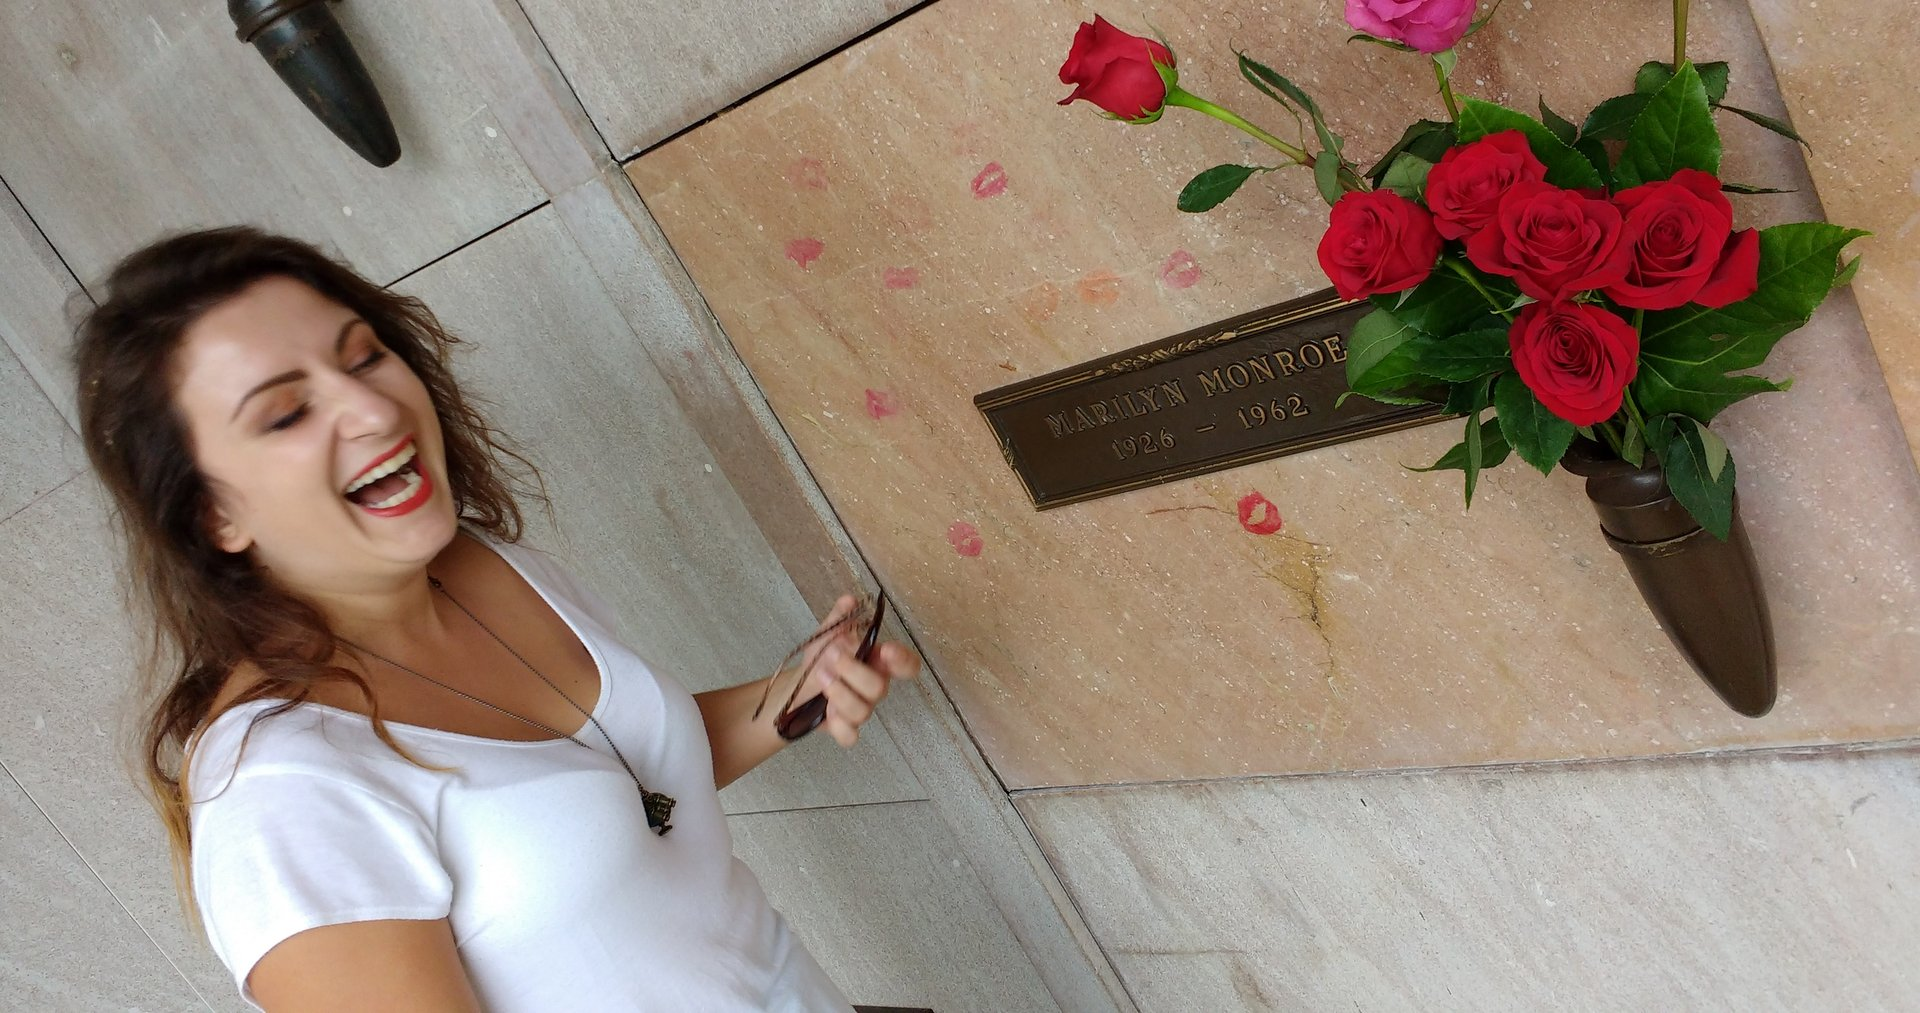 Elena at the grave site of Marilyn Monroe in Westwood, CA, smiling and applying lipstick to leave a lip print on the mausoleum wall